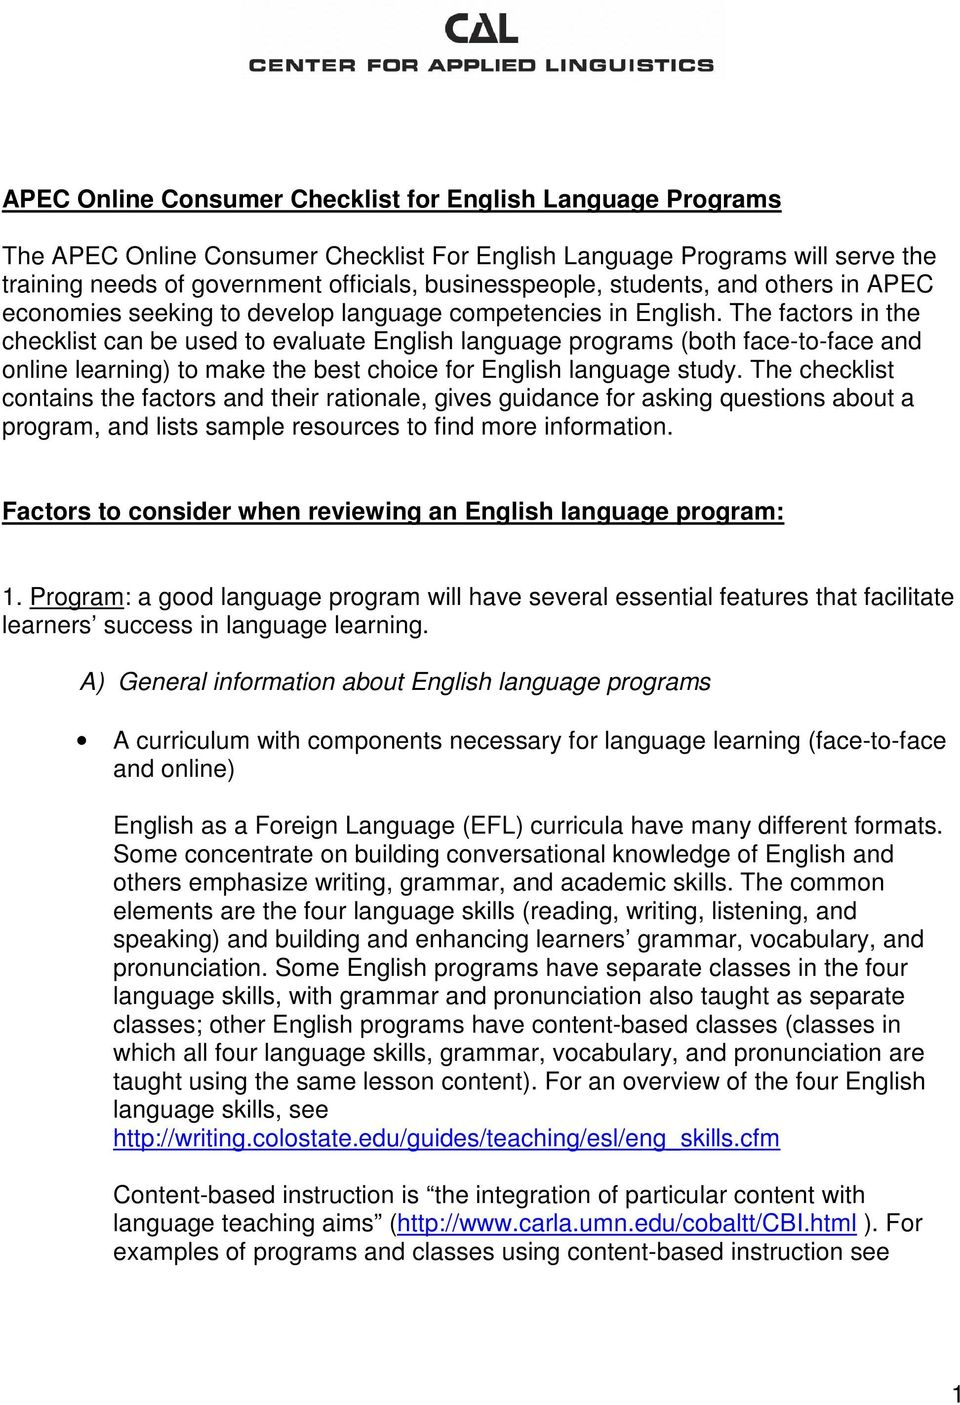 The factors in the checklist can be used to evaluate English language programs (both face-to-face and online learning) to make the best choice for English language study.